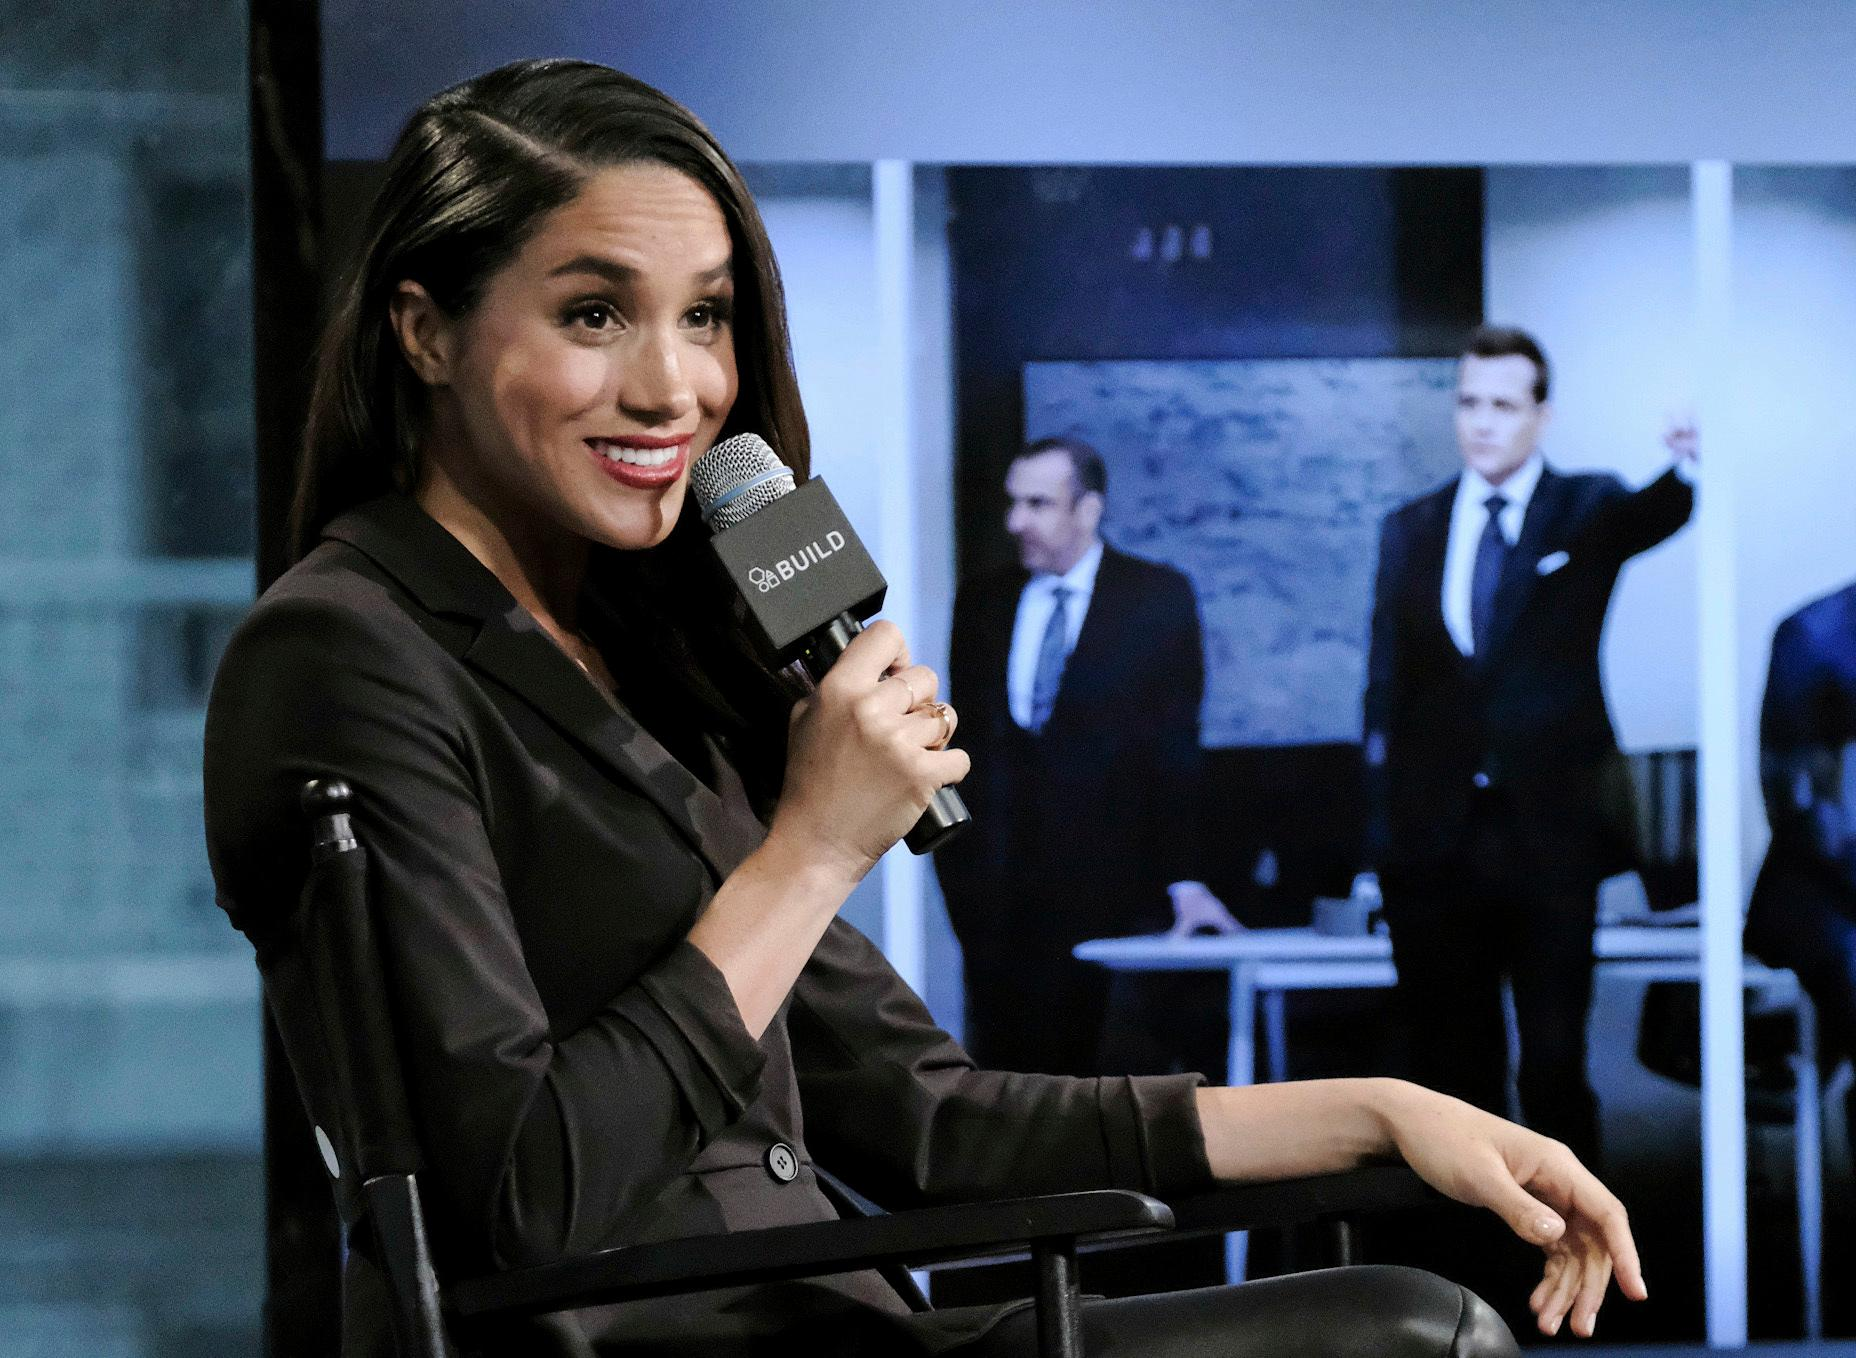 "FILE - In this Thursday, March 17, 2016 file photo, actress Meghan Markle participates in AOL's BUILD Speaker Series to discuss her role on the television show, ""Suits"", in New York. Palace officials announced Monday Nov. 27, 2017 that Britain's Prince Harry is engaged to Meghan Markle, confirming months of rumors that the couple was close to tying the knot. (Photo by Evan Agostini/Invision/AP, File)"